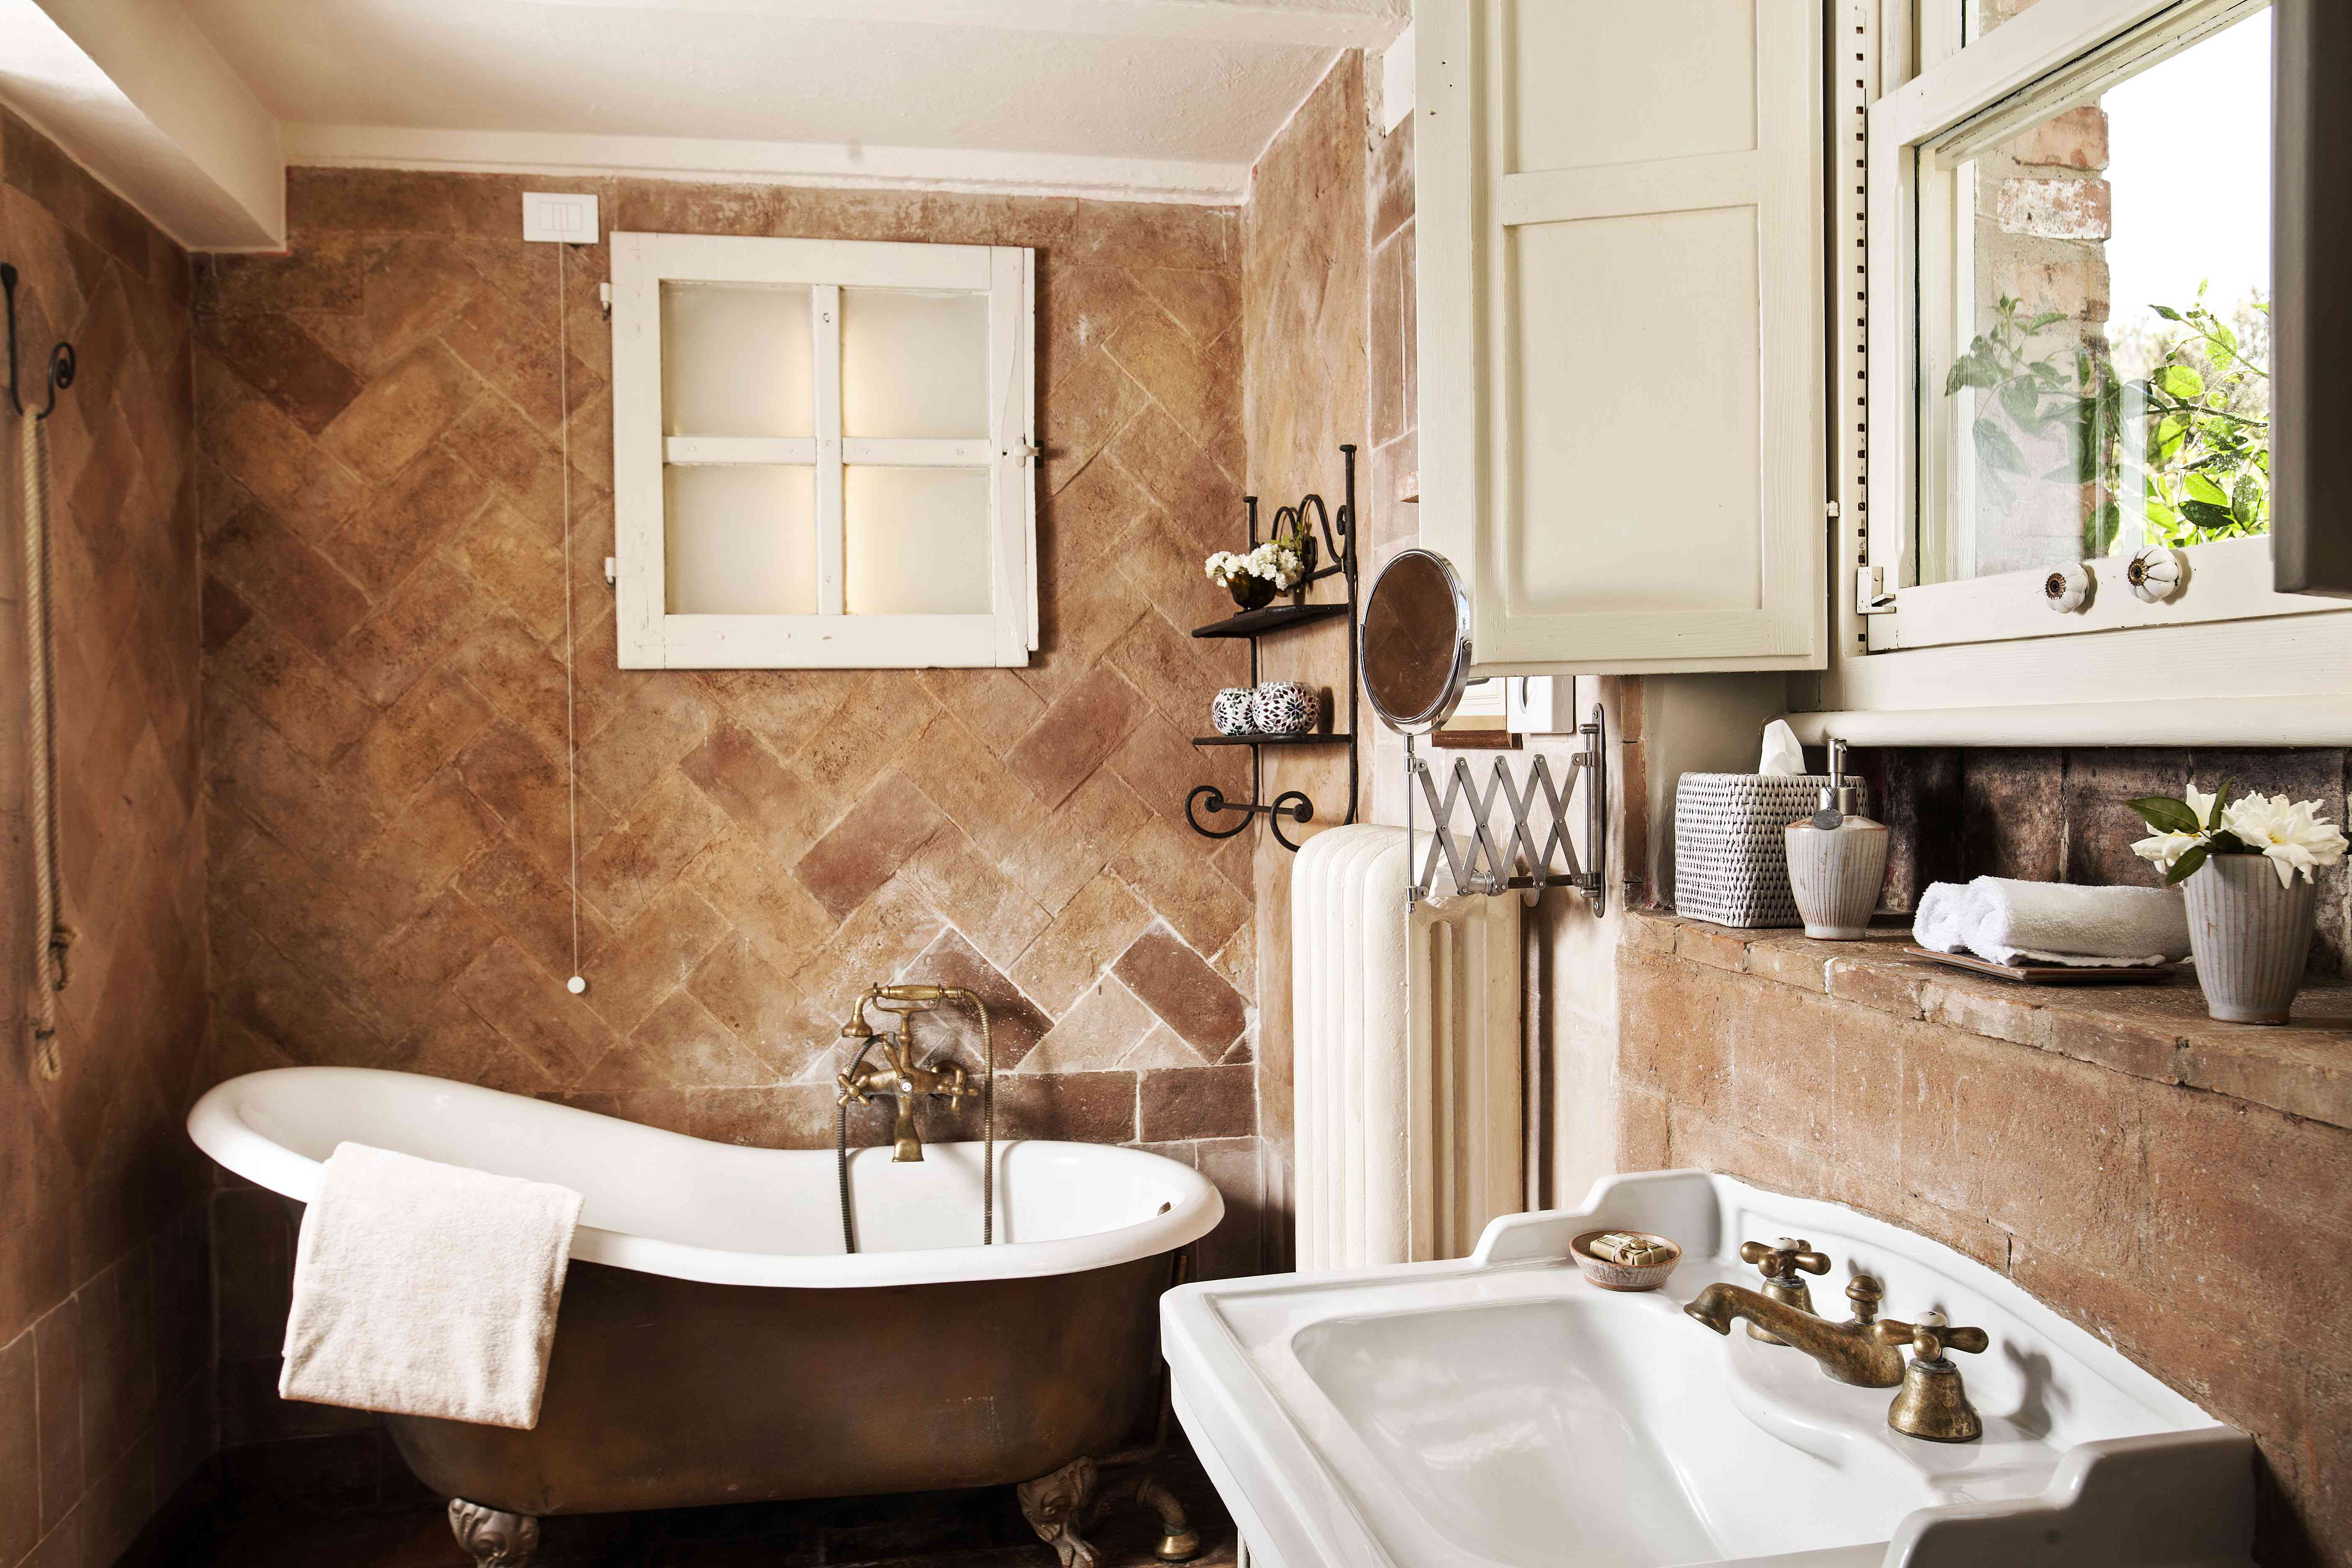 How To Decorate A Tuscan Style Home, Tuscan Style Bathroom